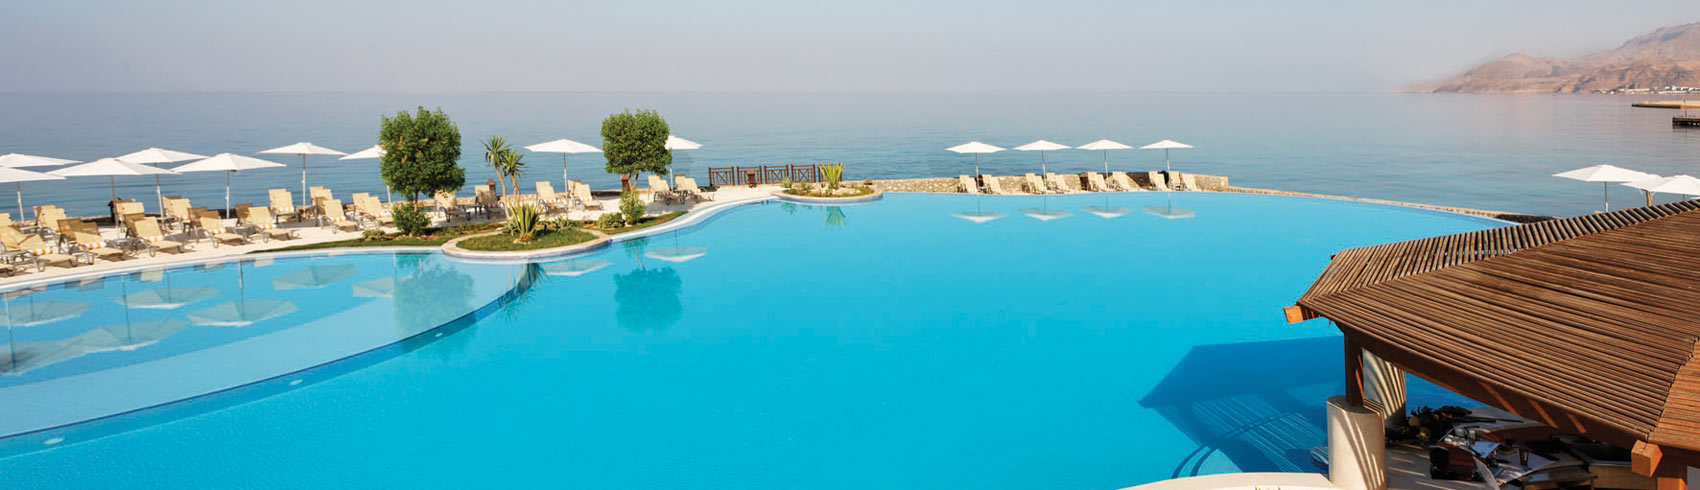 Ain Sokhna Egypt  city photo : Mövenpick Resort El Sokhna Ain Sokhna